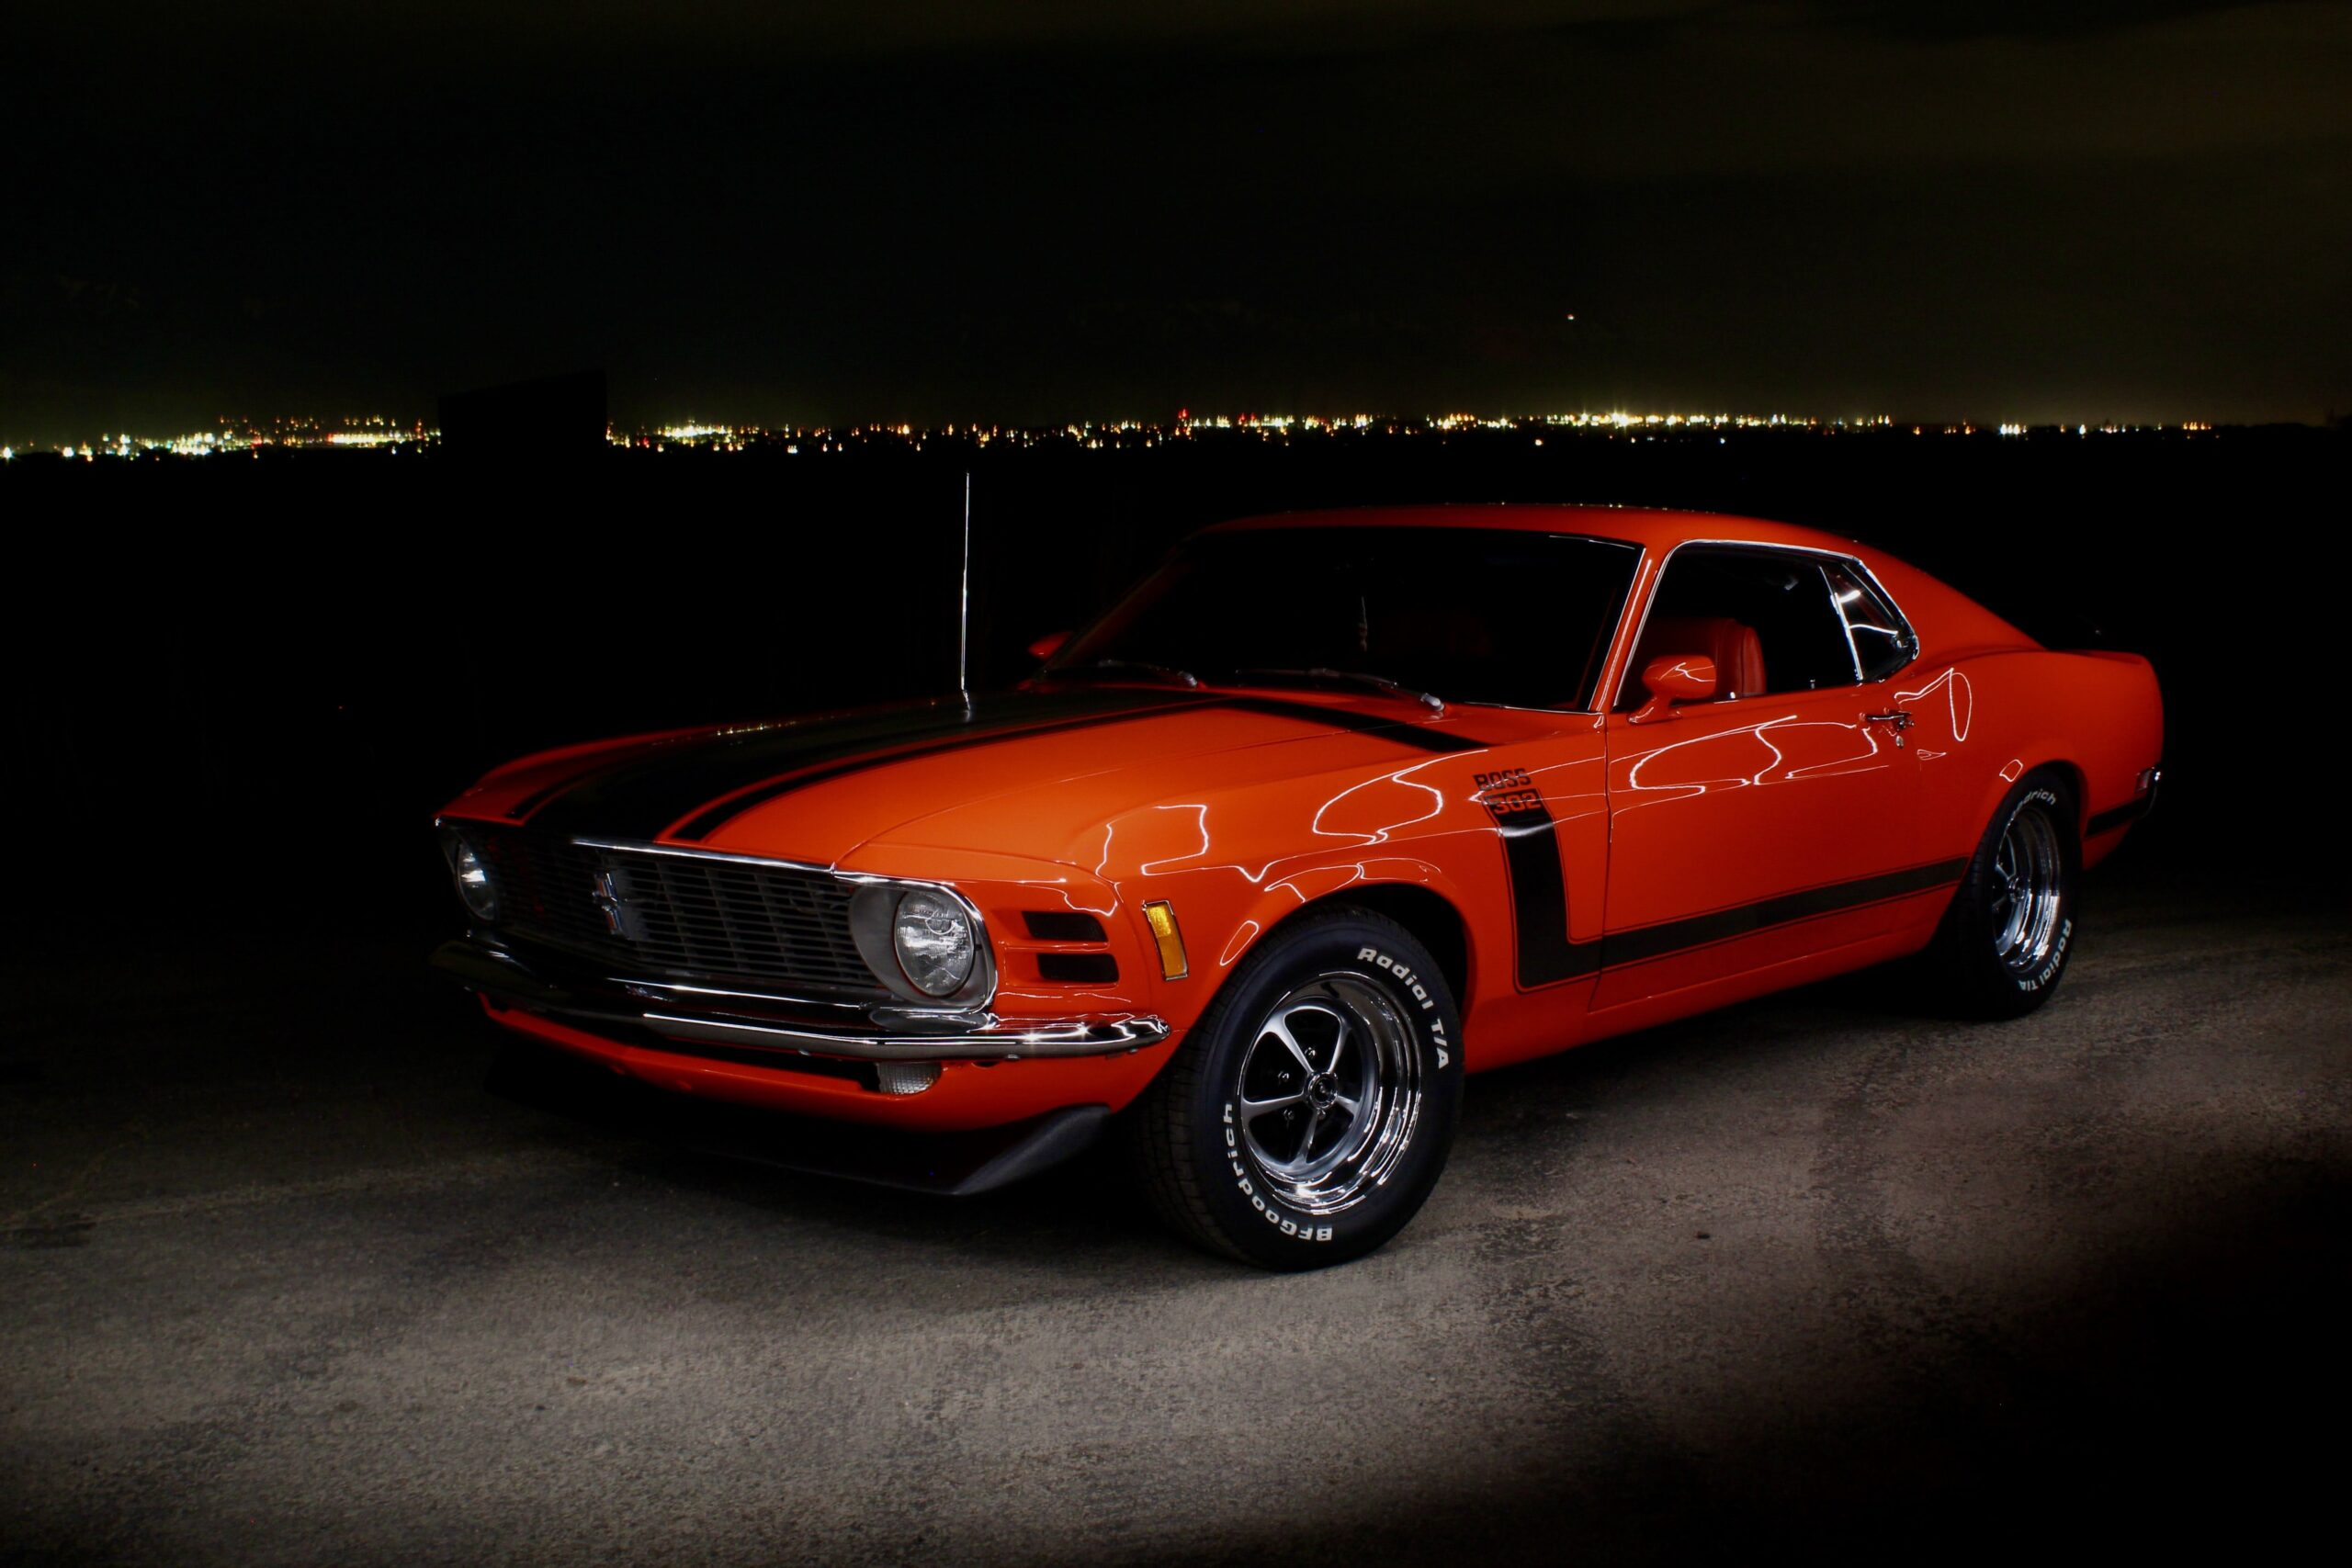 Ron McAtee, West Haven, UT- 1970 Ford BOSS 302